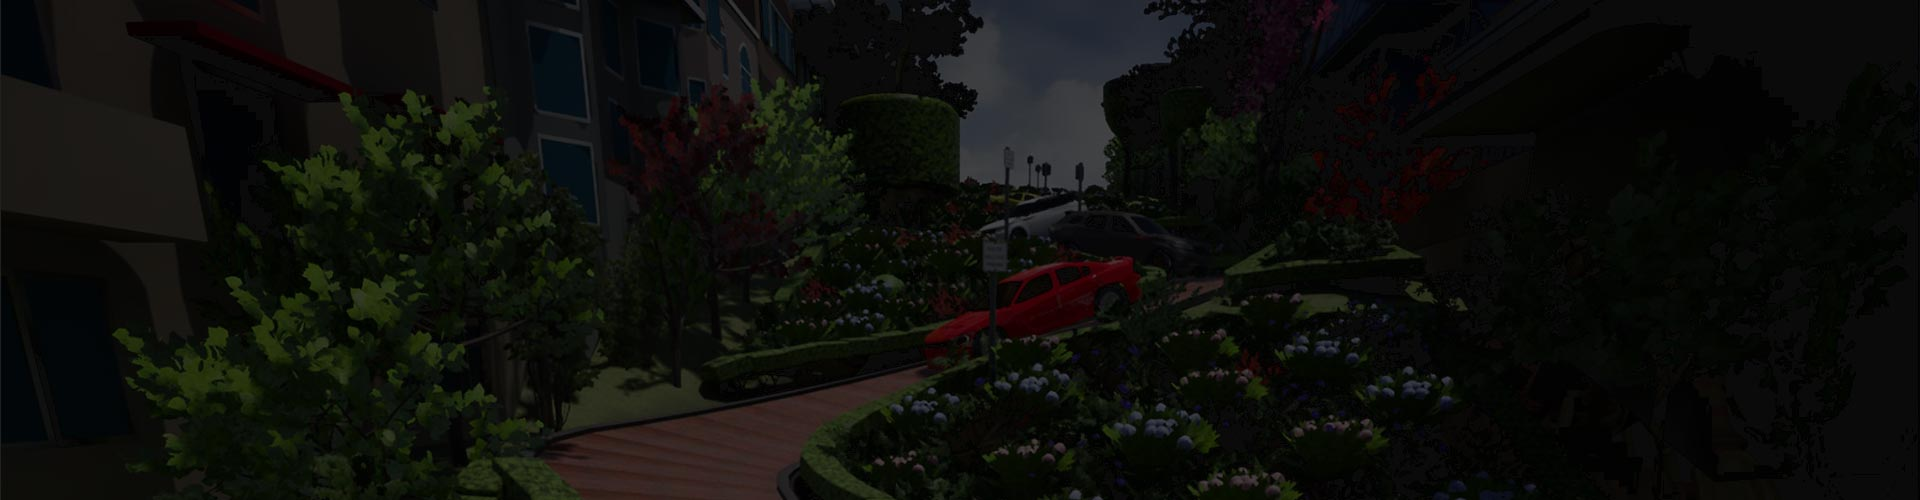 3D Visualization Level called 3D Lombard Street for 3D Visualization Company